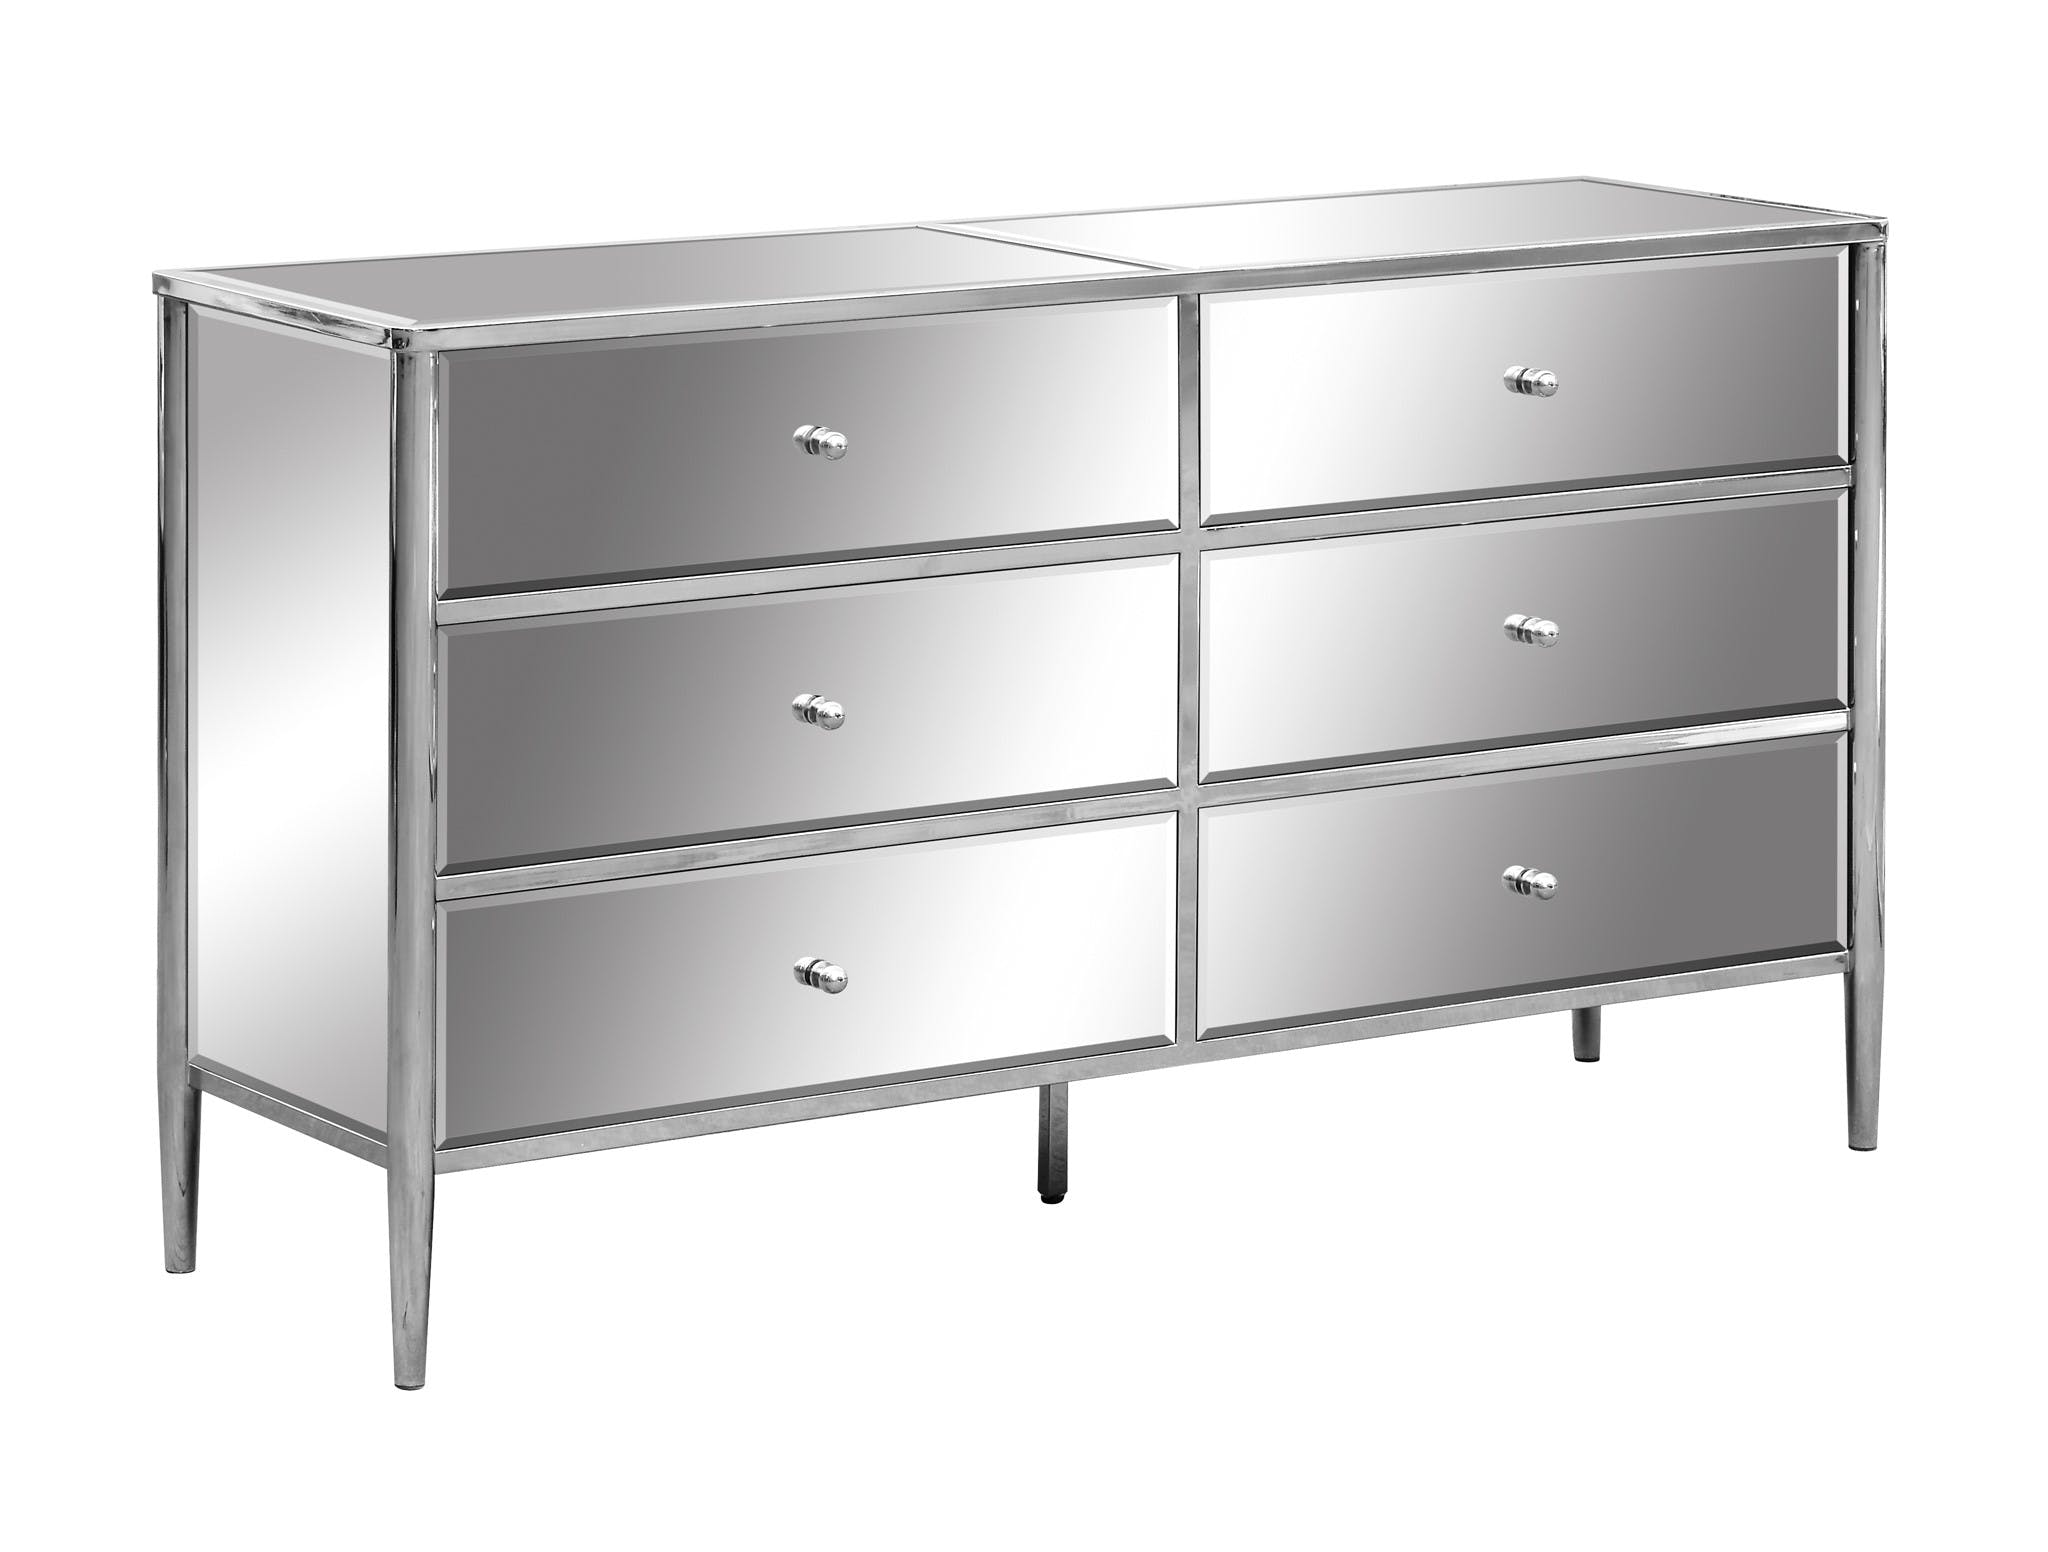 Crestview Bedroom Hollywood Nickel And Mirror 6 Drawer Chest Cvfzr3726 Weinberger S Furniture And